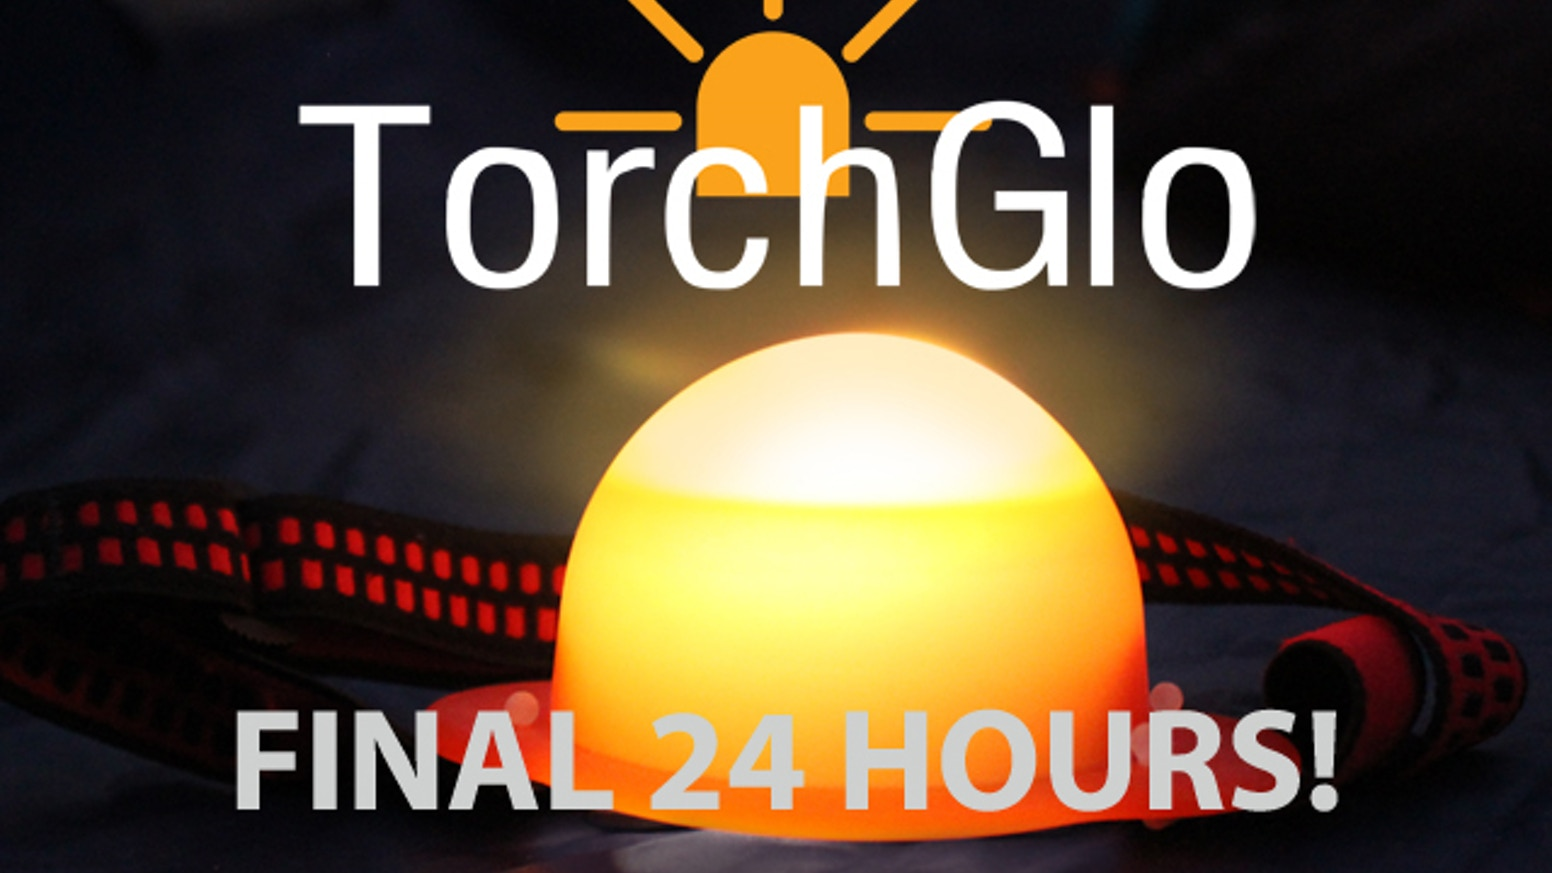 TorchGlo bring a social lighting atmosphere to the campsite! It diffuses headlamp light into a warmer, ambient glow.